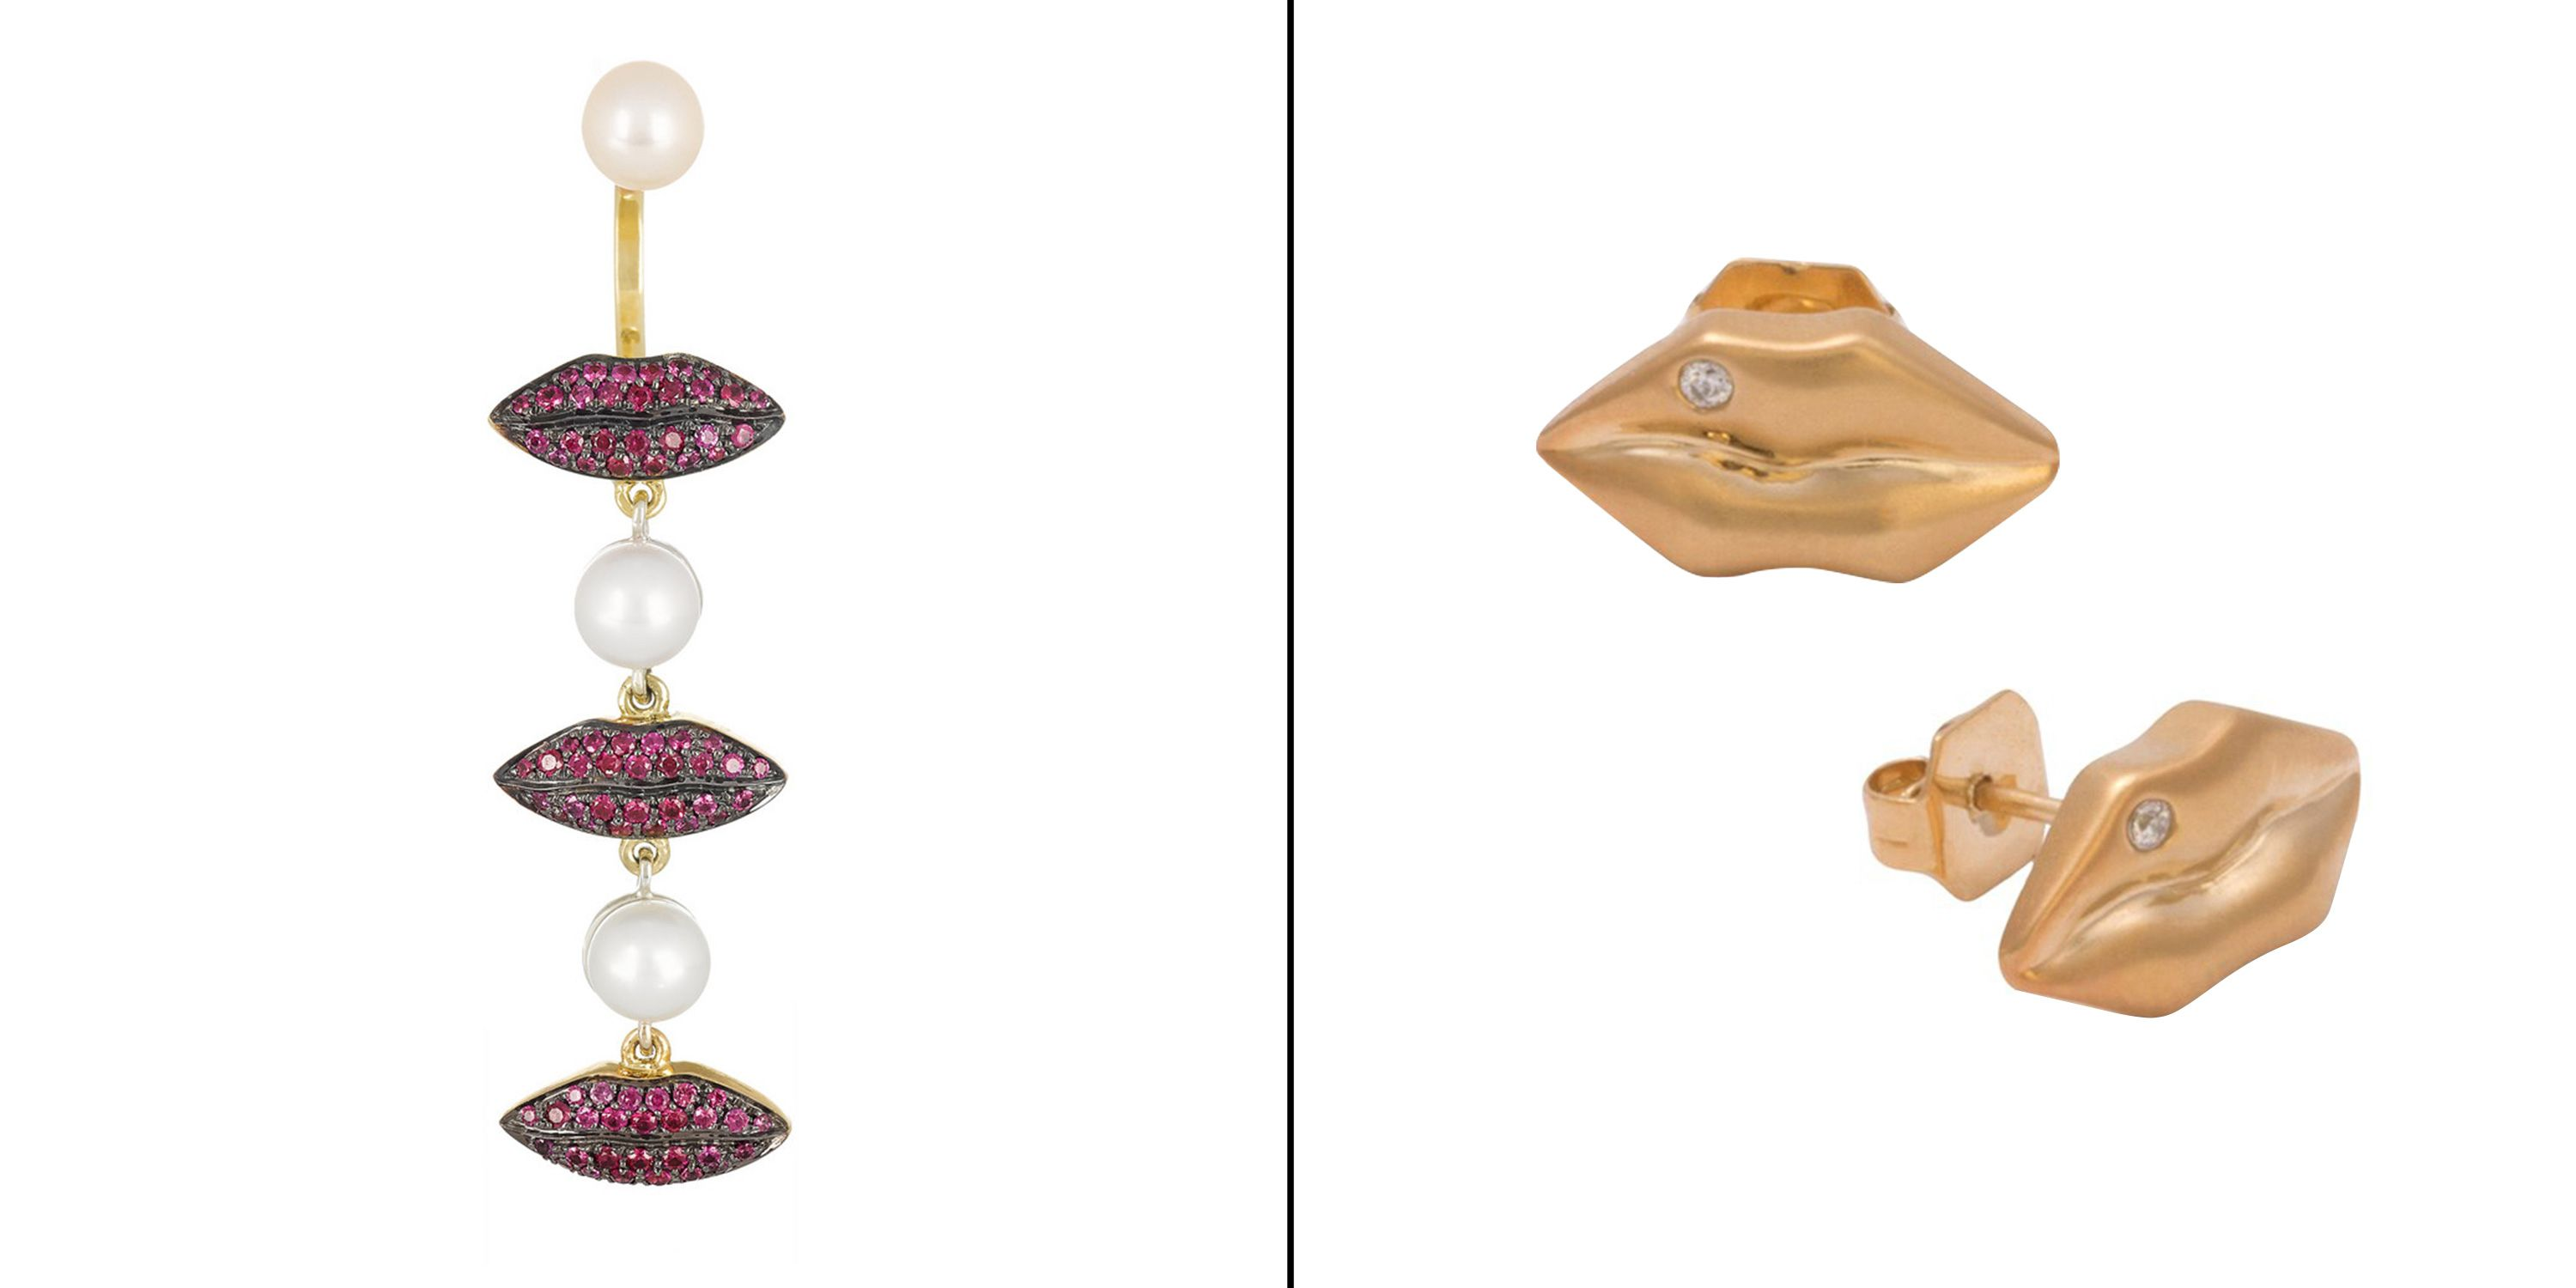 "<strong>Delfina Delettrez </strong>ruby and pearl earring, $5,662, <a href=""http://www.matchesfashion.com/product/211797"" target=""_blank"">matchesfashion.com</a>; <strong>Kelly Wearstler </strong>earrings, $165, <a href=""http://www.kellywearstler.com/JHOE14152.html?cgid=earrings&dwvar_JHOE14152_color=BURNG#start=1"" target=""_blank"">kellywearstler.com</a>."